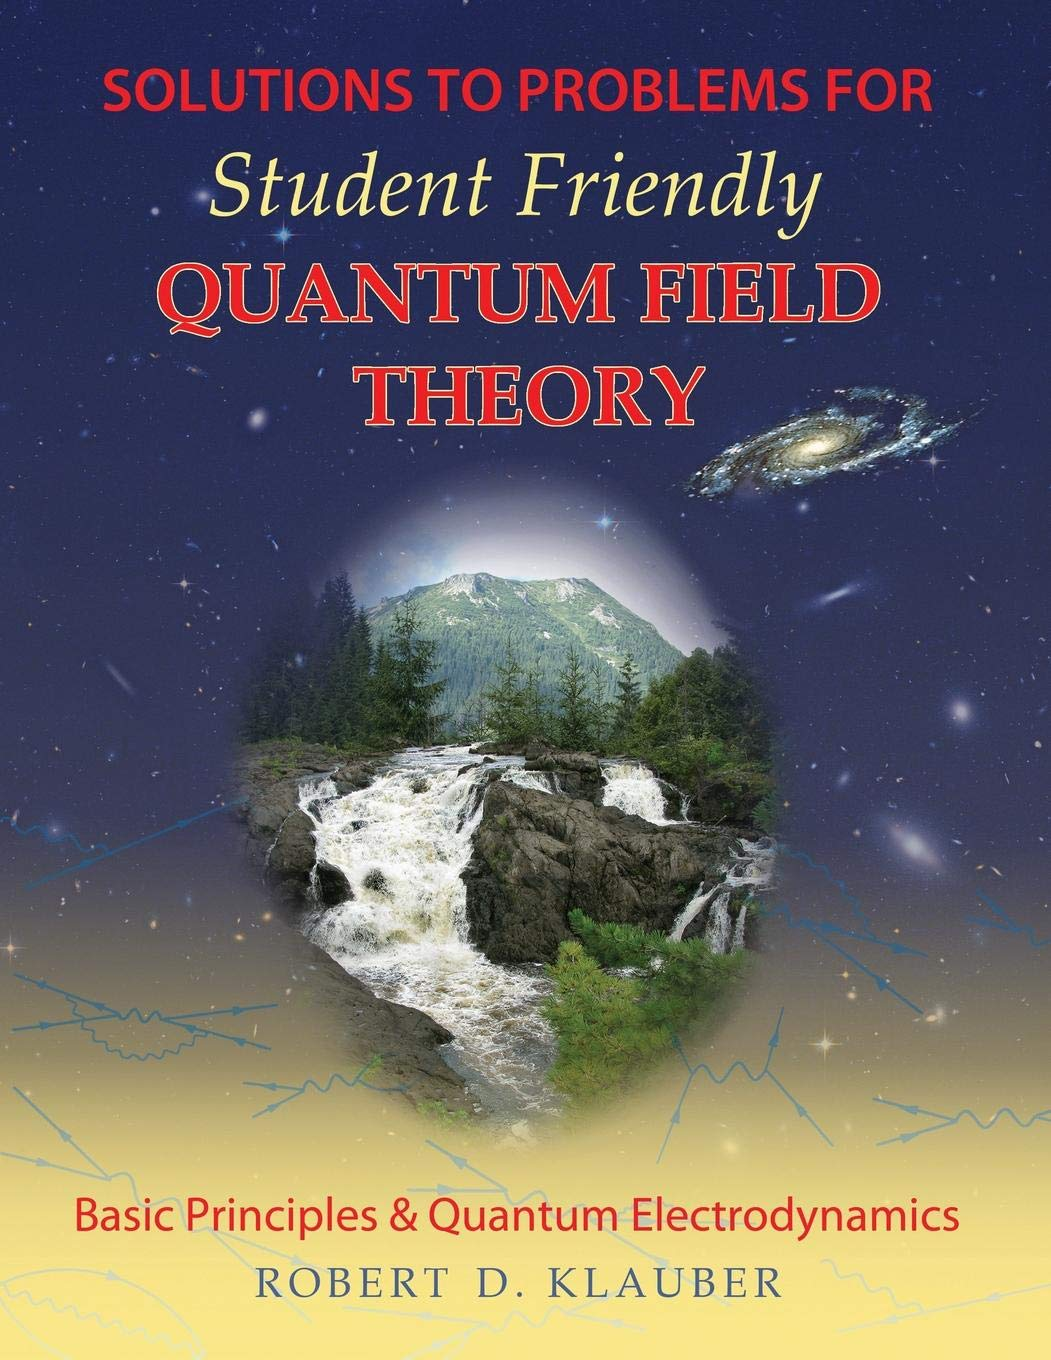 Download Solutions to Problems for Student Friendly Quantum Field Theory PDF